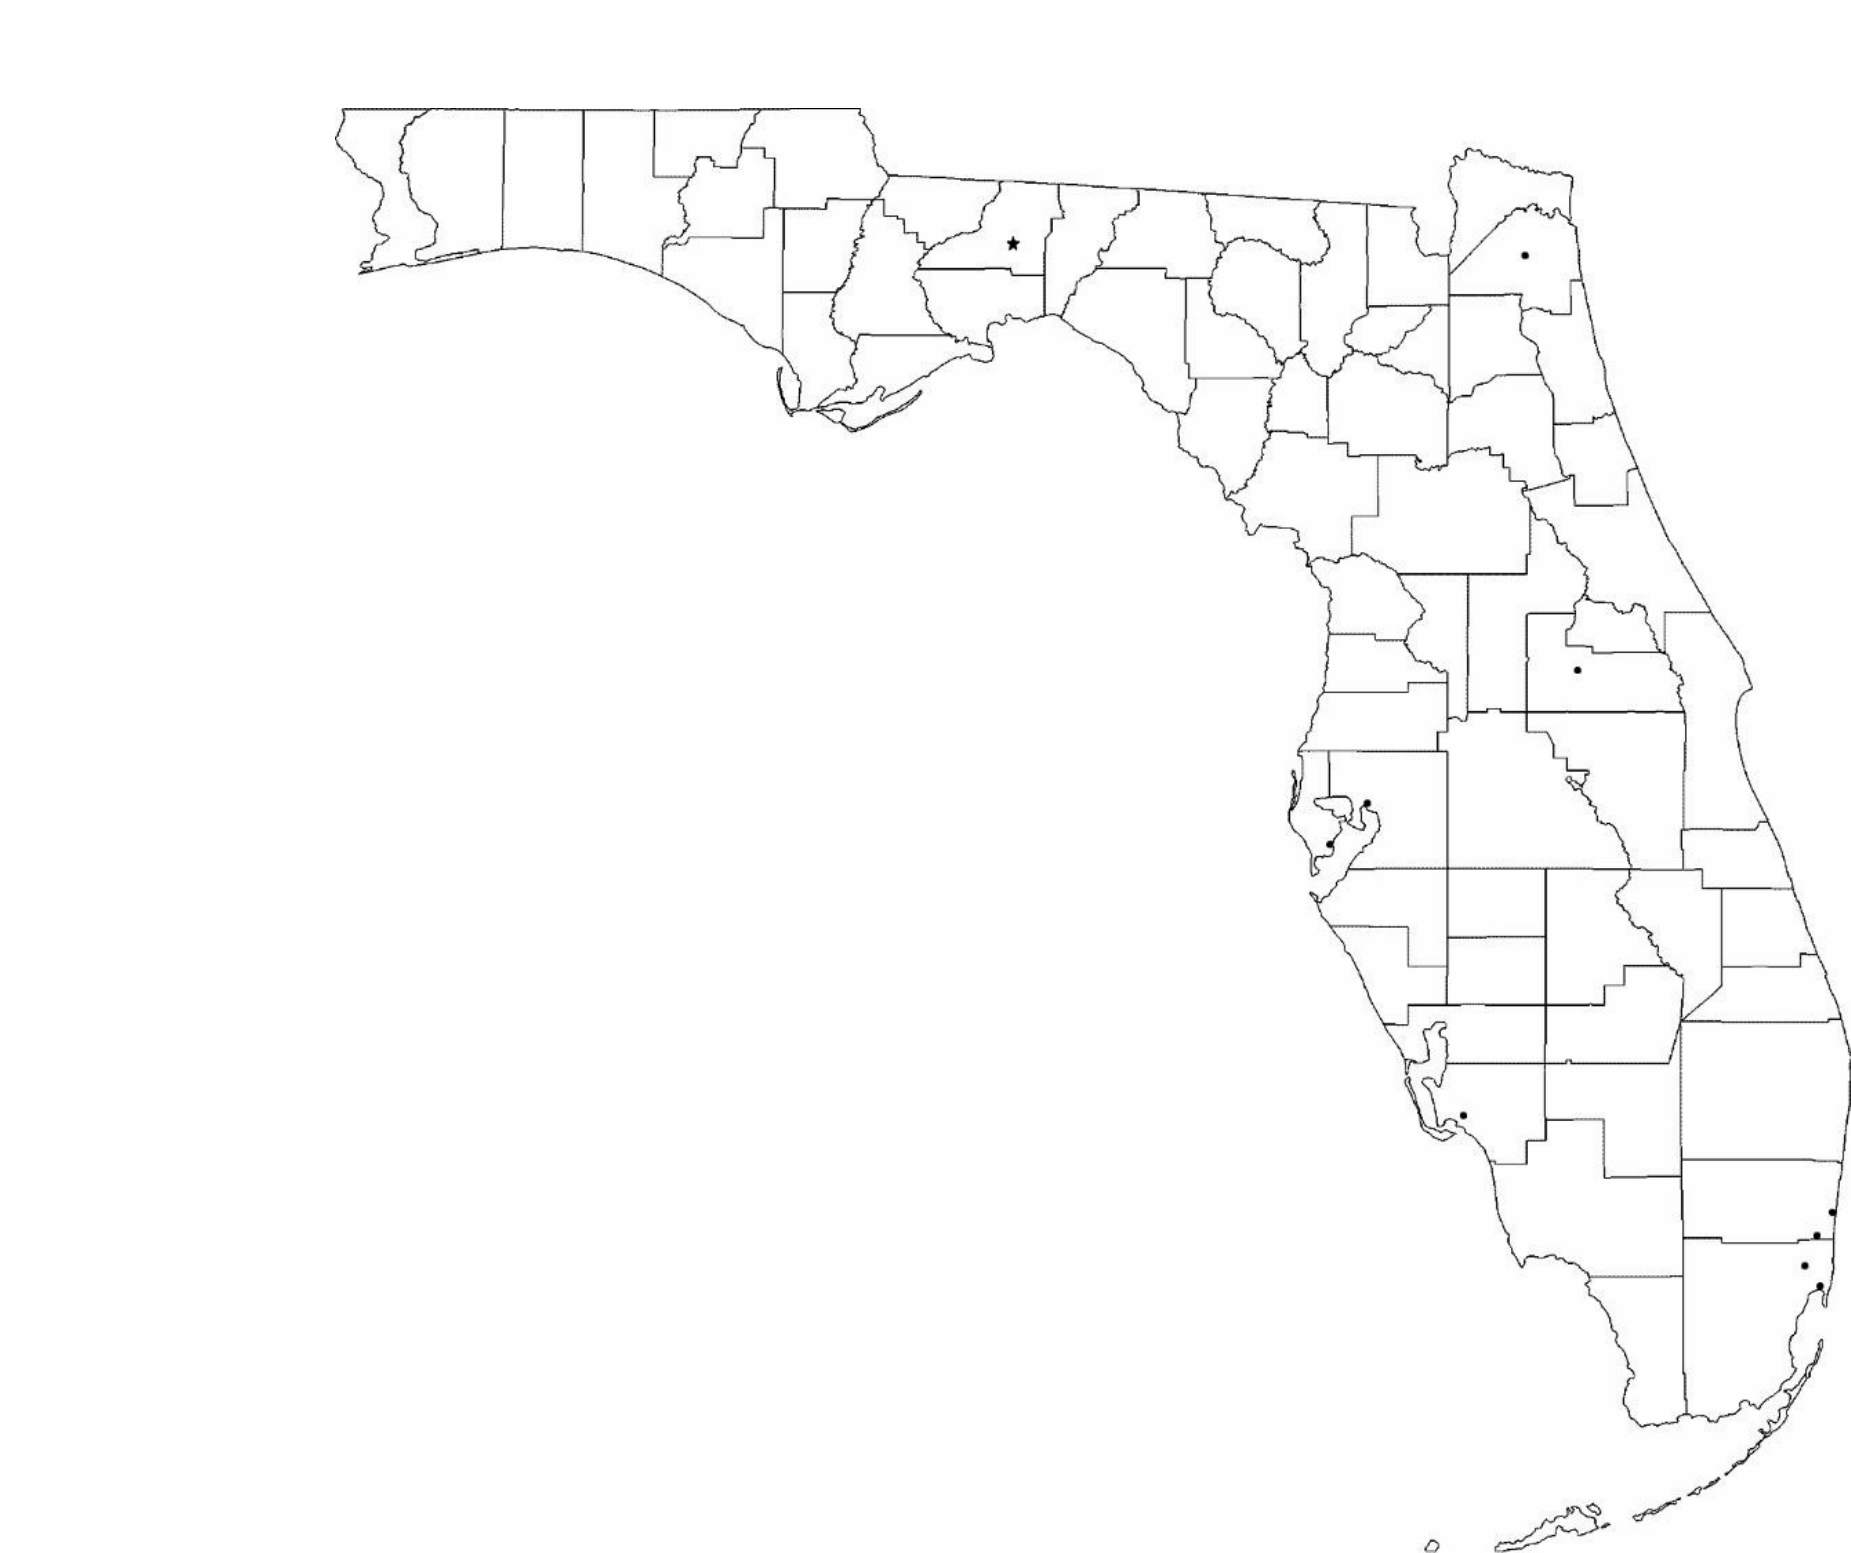 Blank Florida City Map Free Download